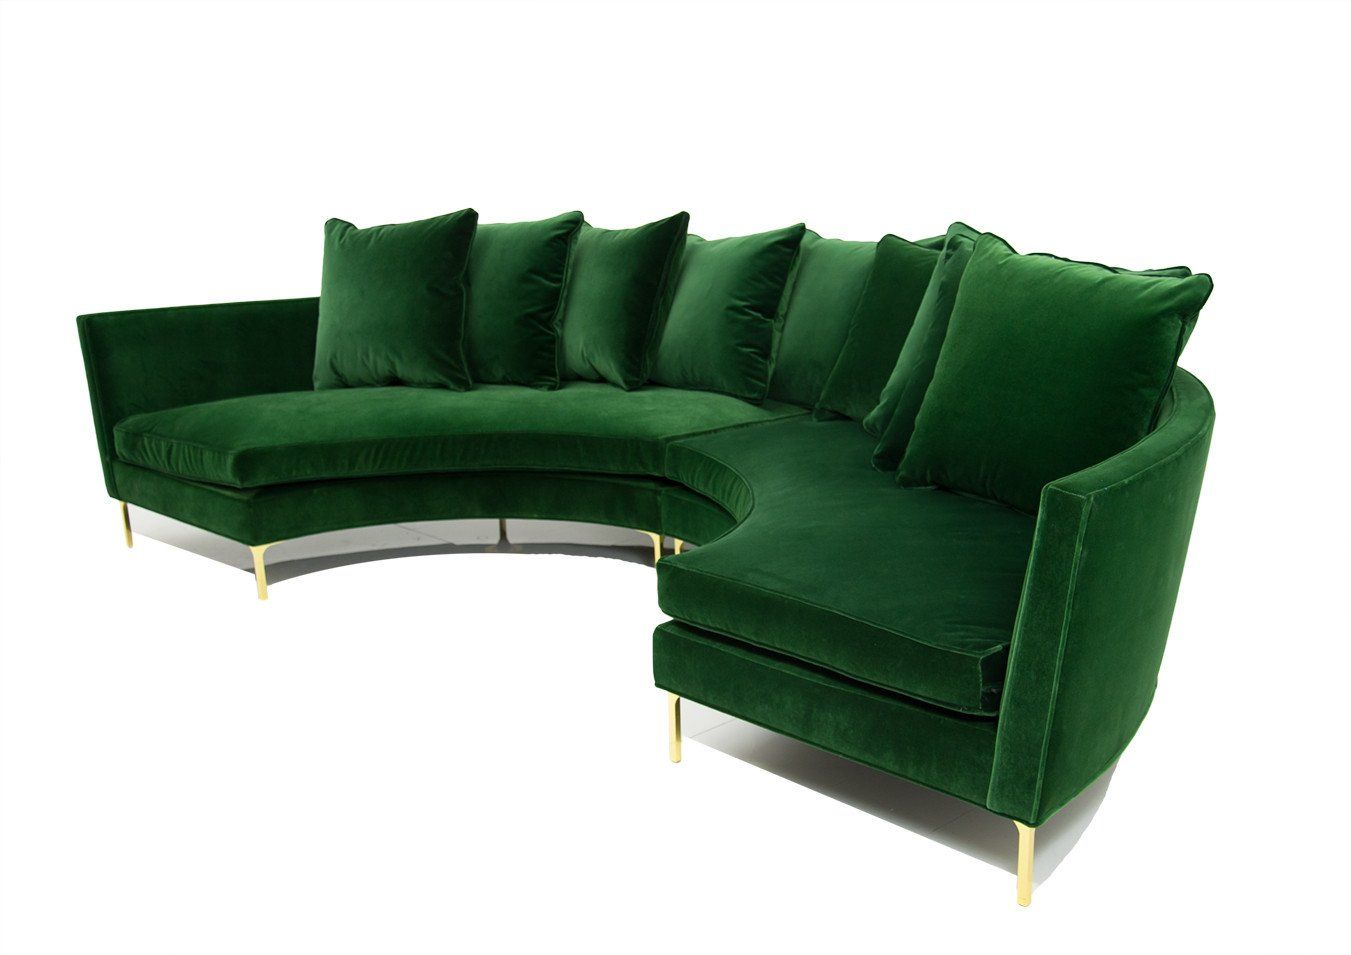 Sardinia Sectional in Emerald Velvet | Living spaces, House and Spaces